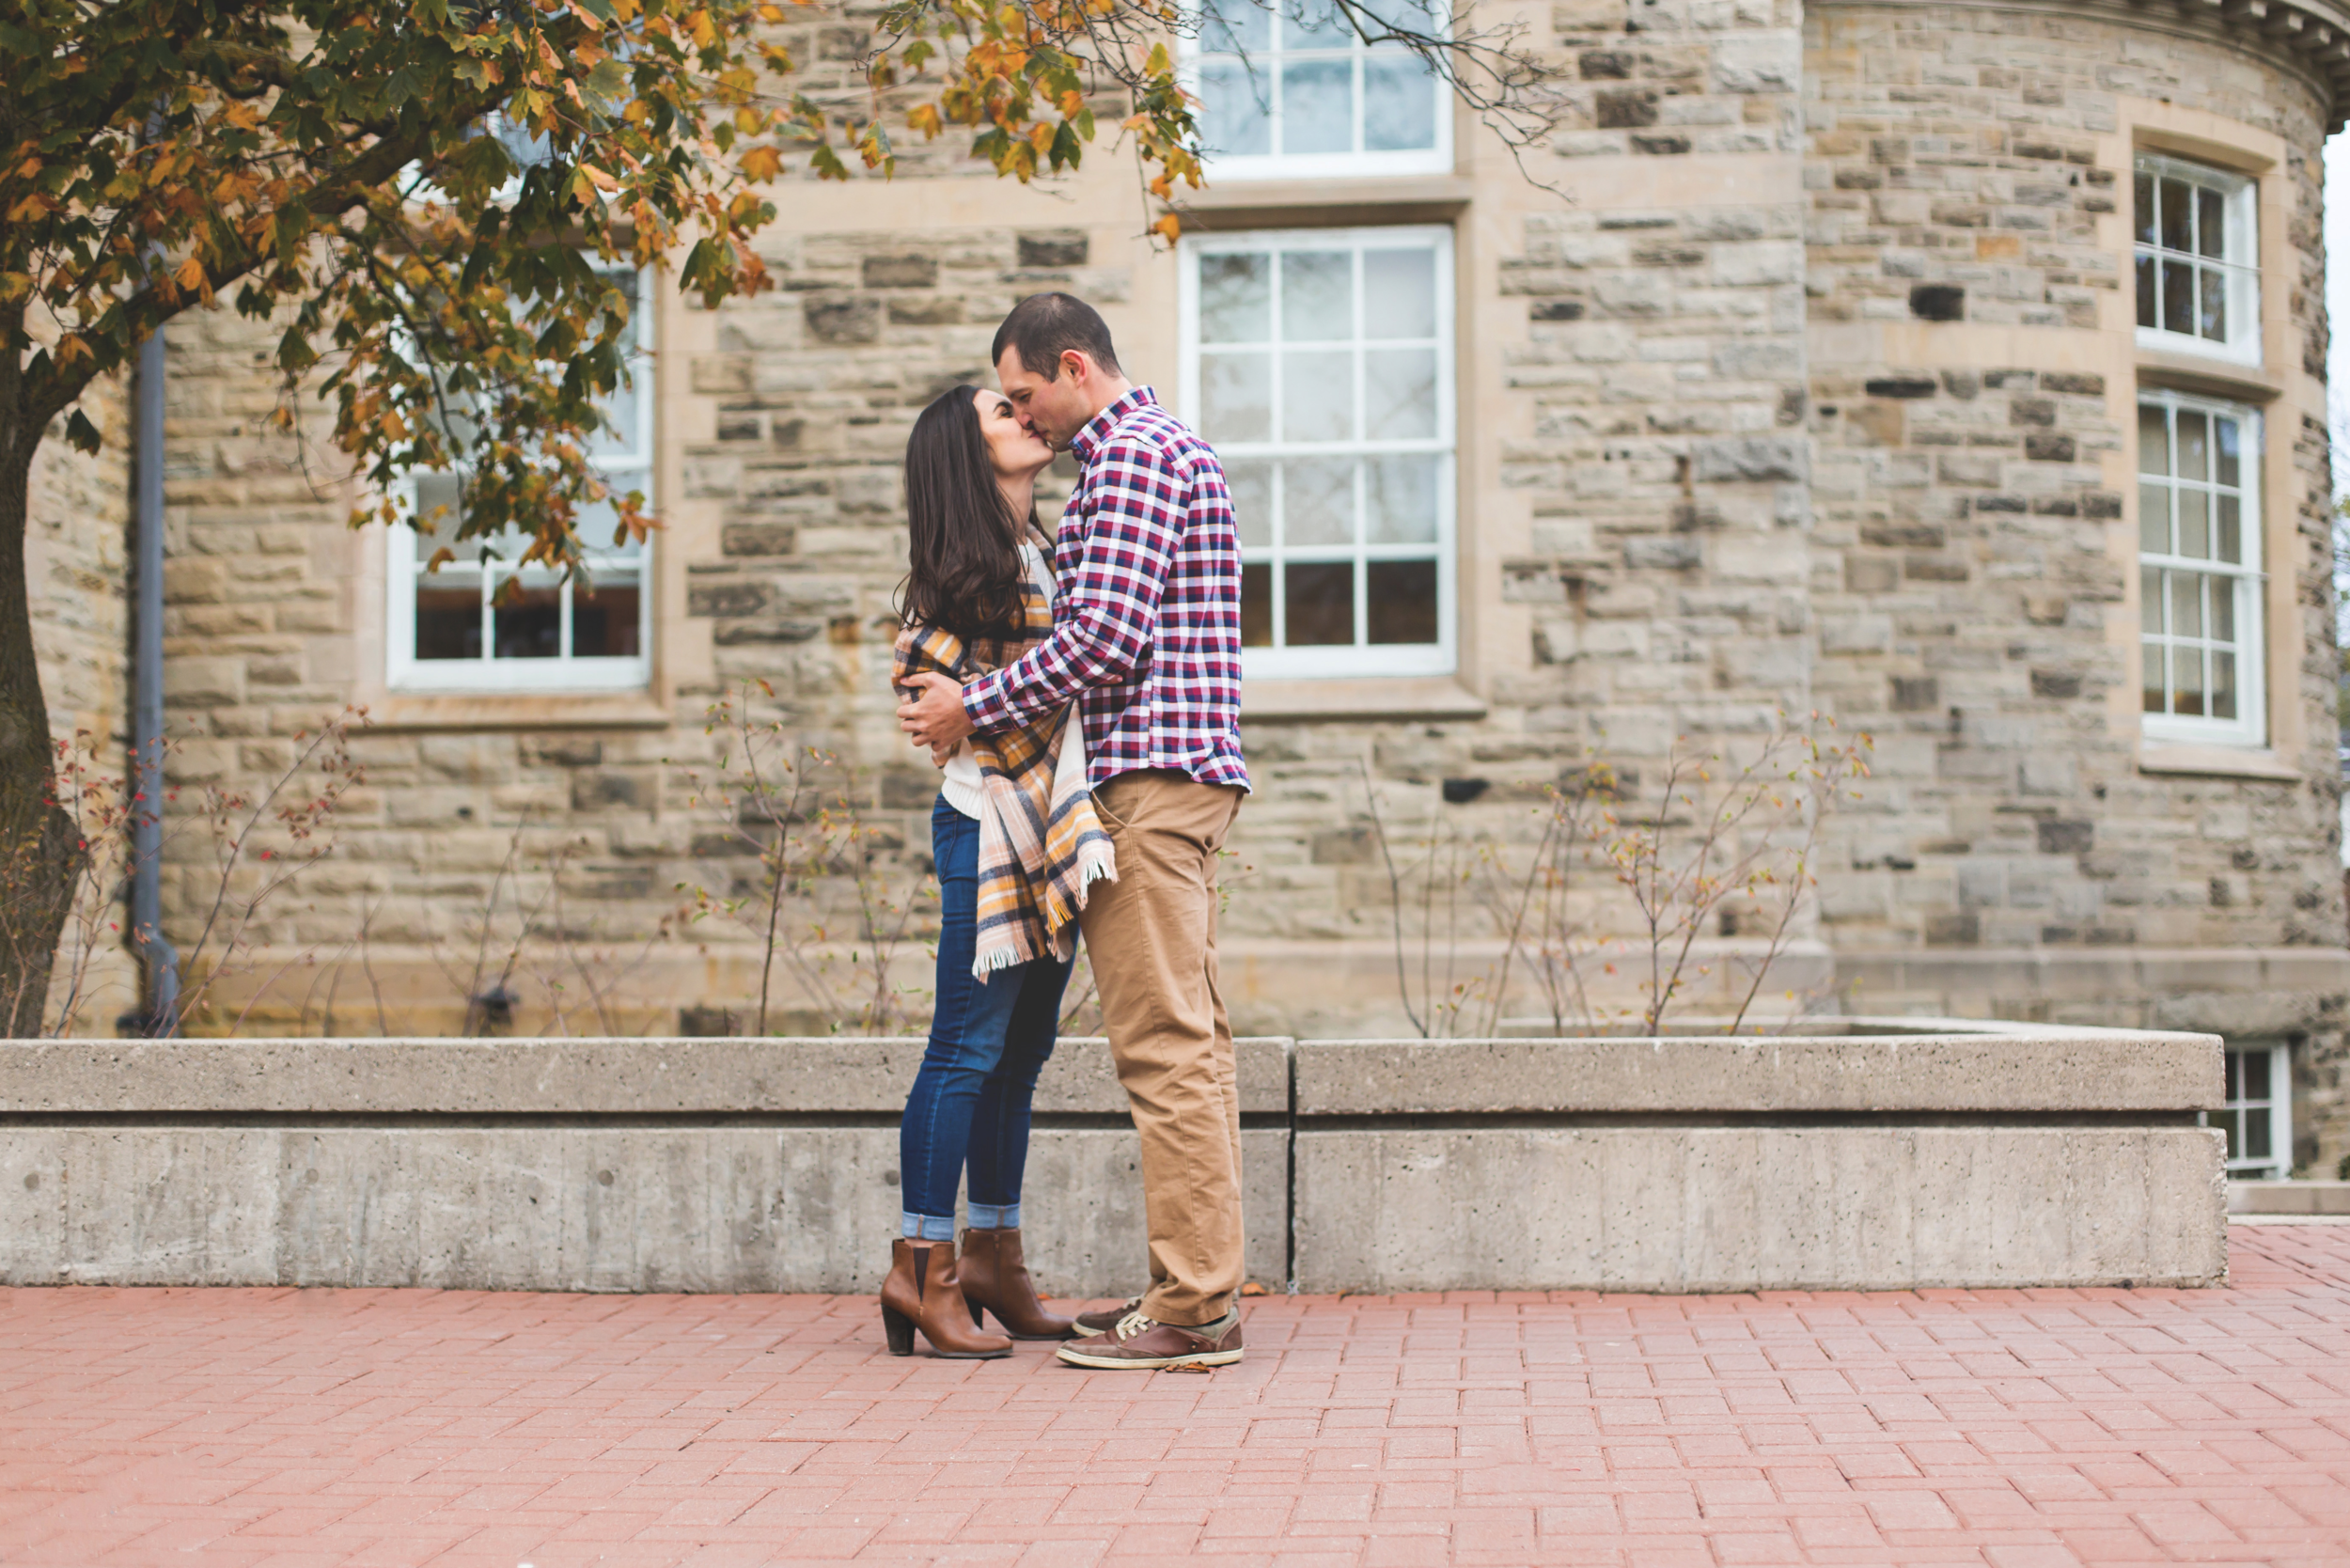 Engagement-Photography-Guelph-University-Campus-Hamilton-Burlington-Oakville-Niagara-Toronto-Wedding-Photographer-Photo-Image-23.png